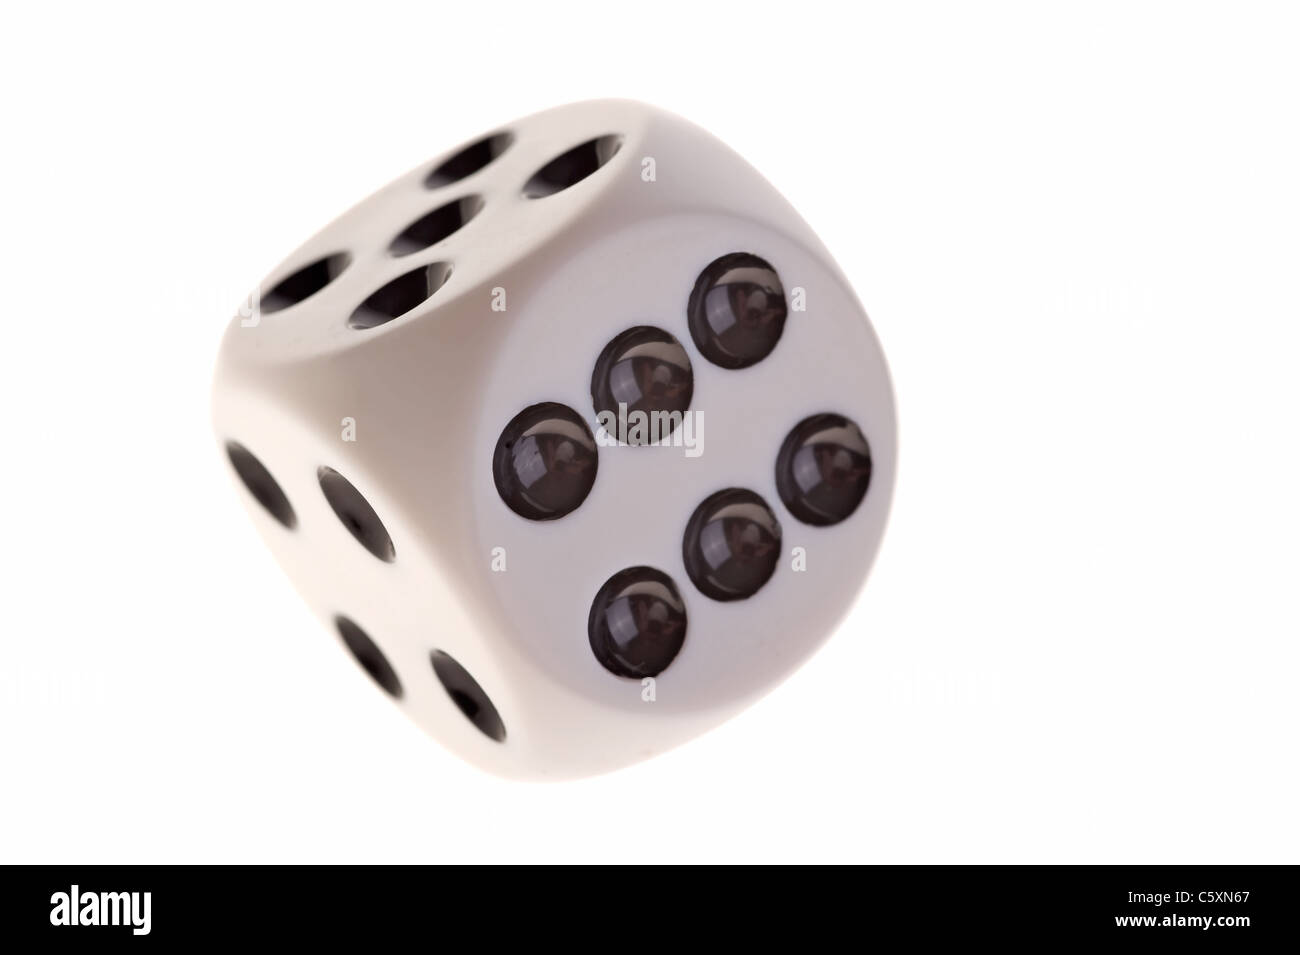 Dice Image with 6, 5 and 4 facing on white background - Stock Image